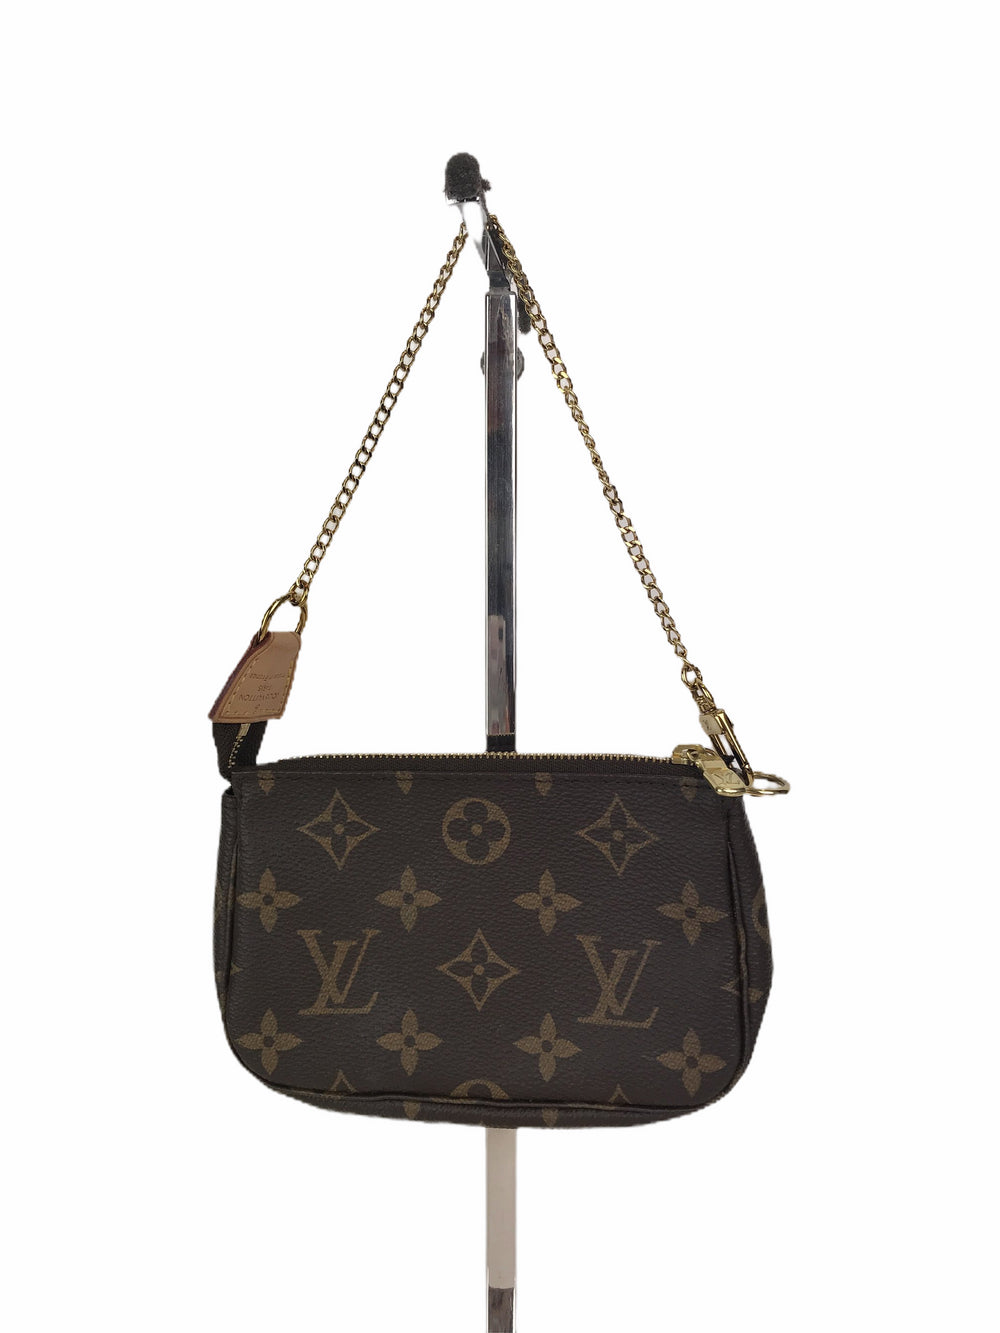 Louis Vuitton Mini Pochette - As seen on Instagram